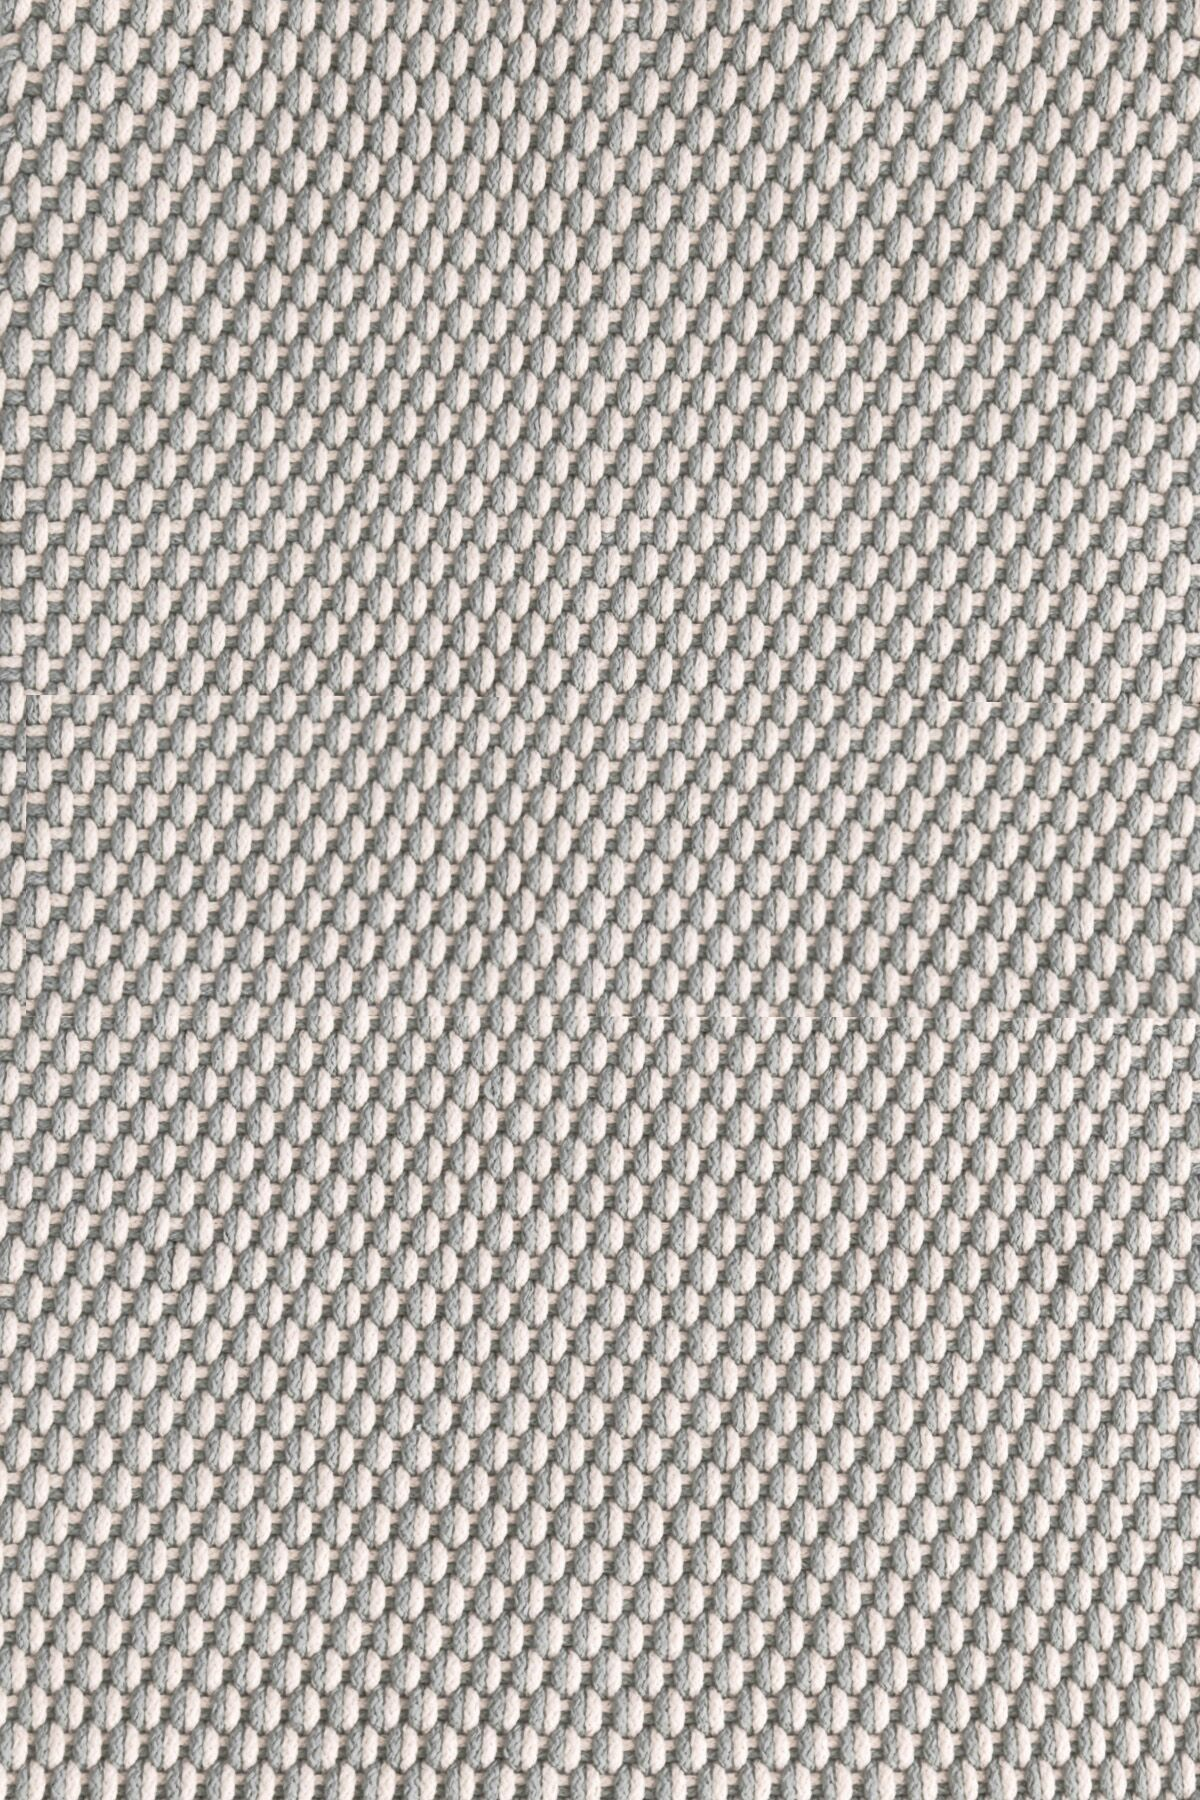 Two-Tone Rope Hand-Woven Platinum/Ivory Indoor/Outdoor Area Rug Rug Size: 2' x 3'